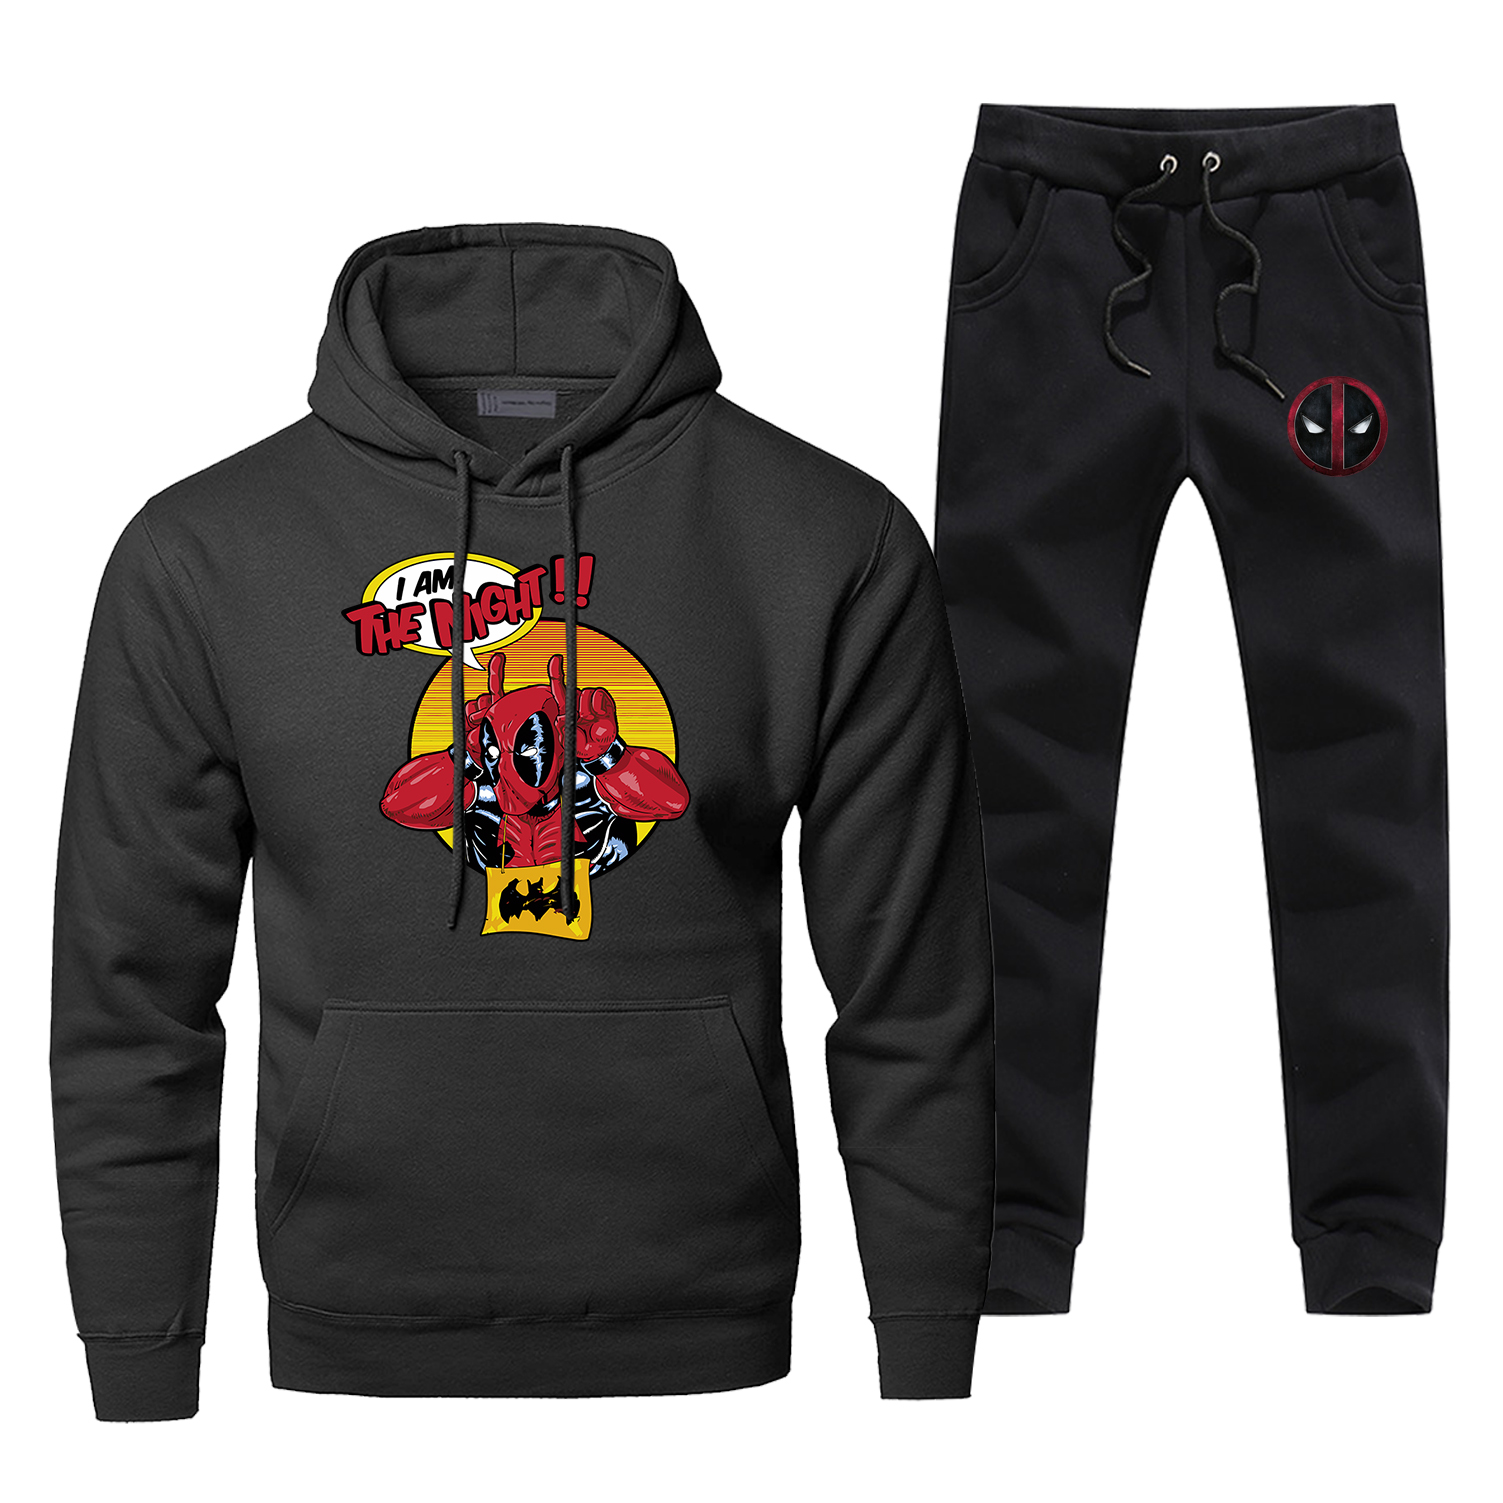 Dead Poll Hoodie Pants Set Men Sweatshirt Male Super Hero Deadpoll Hoodies Sweatshirts Mens Sets Two Piece Pant Pullover Coats